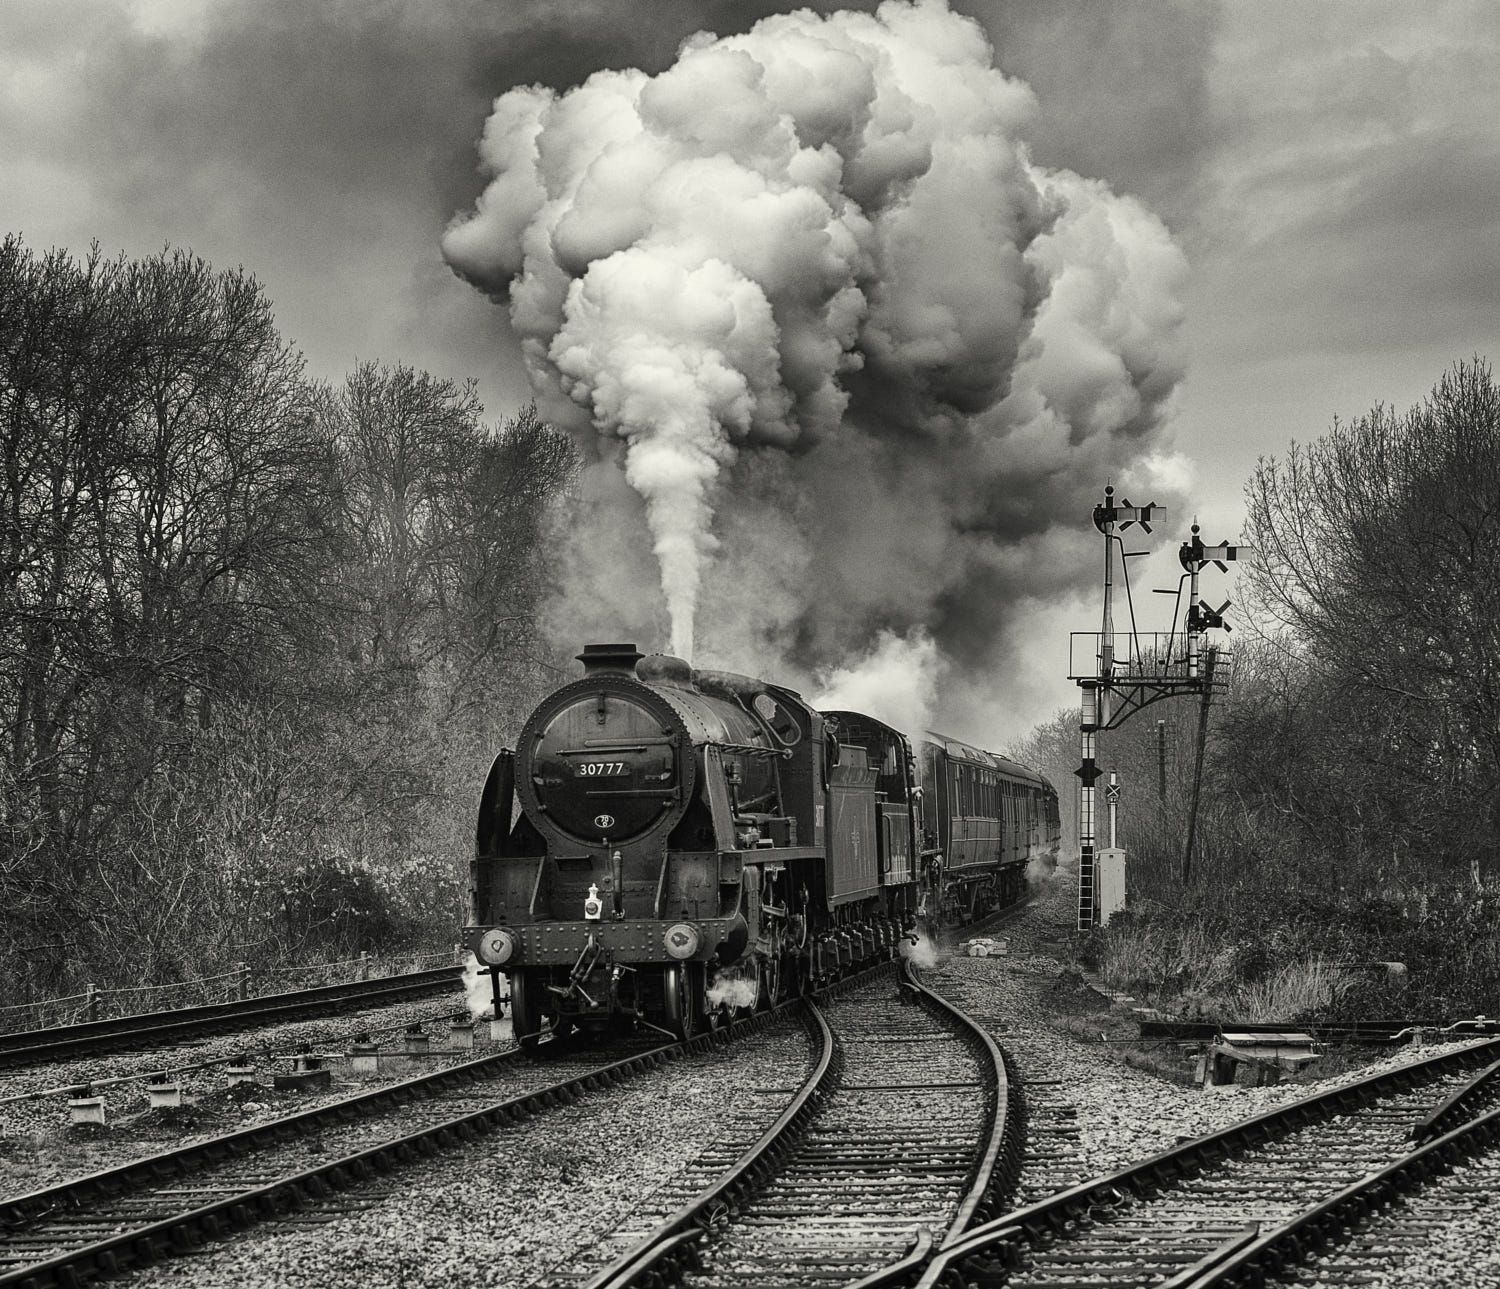 Pin by Mike Tebay on Steam Trains Train, Steam